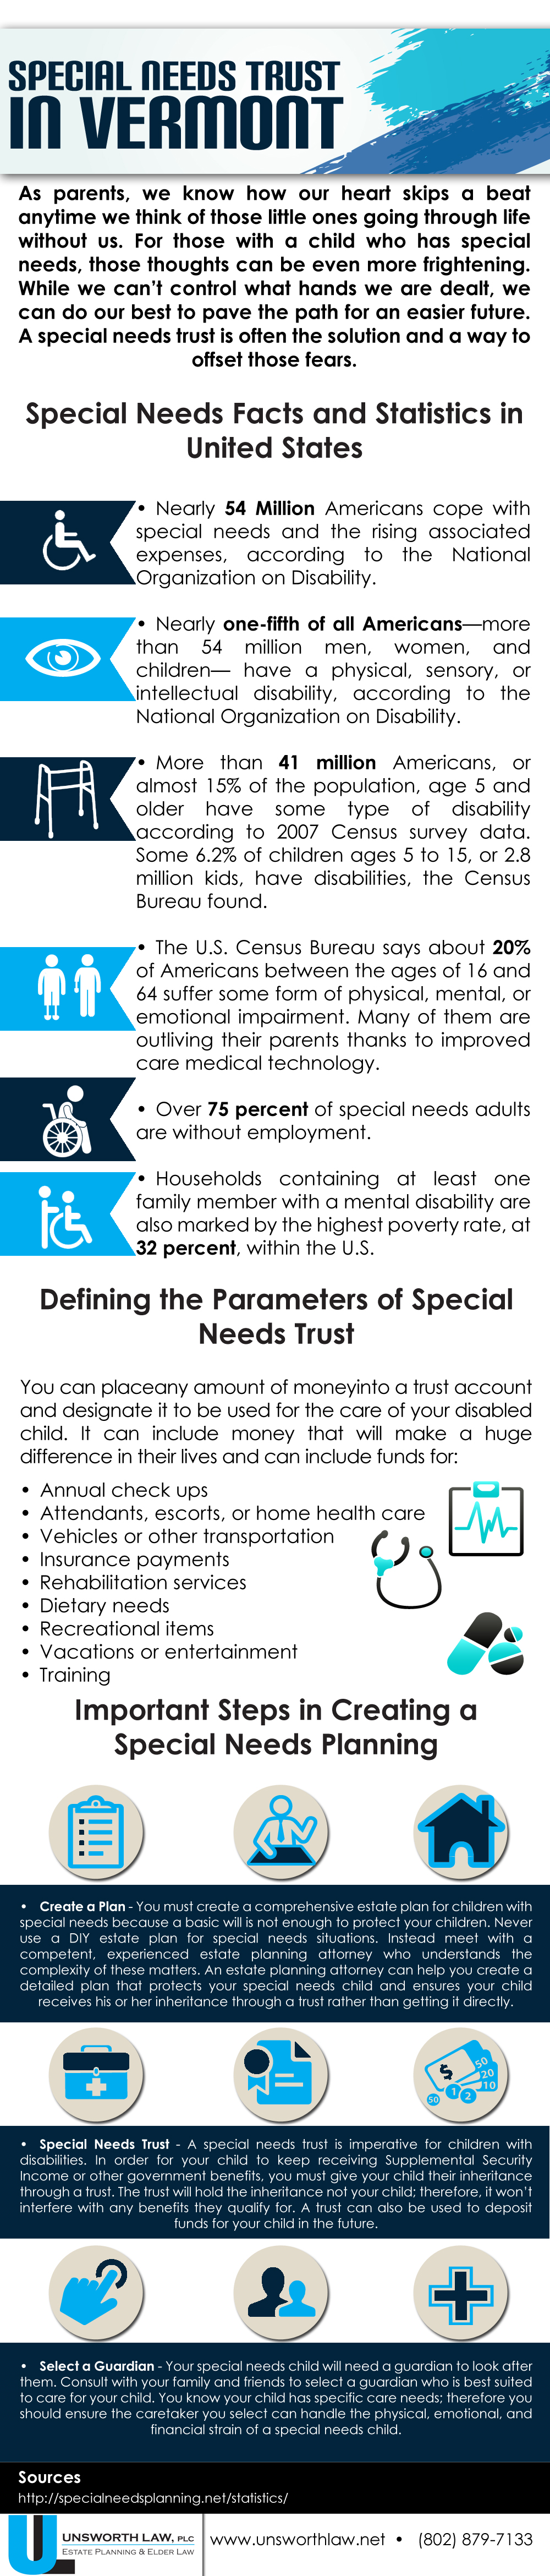 Special Needs Trust in Vermont - Unsworth Infographics